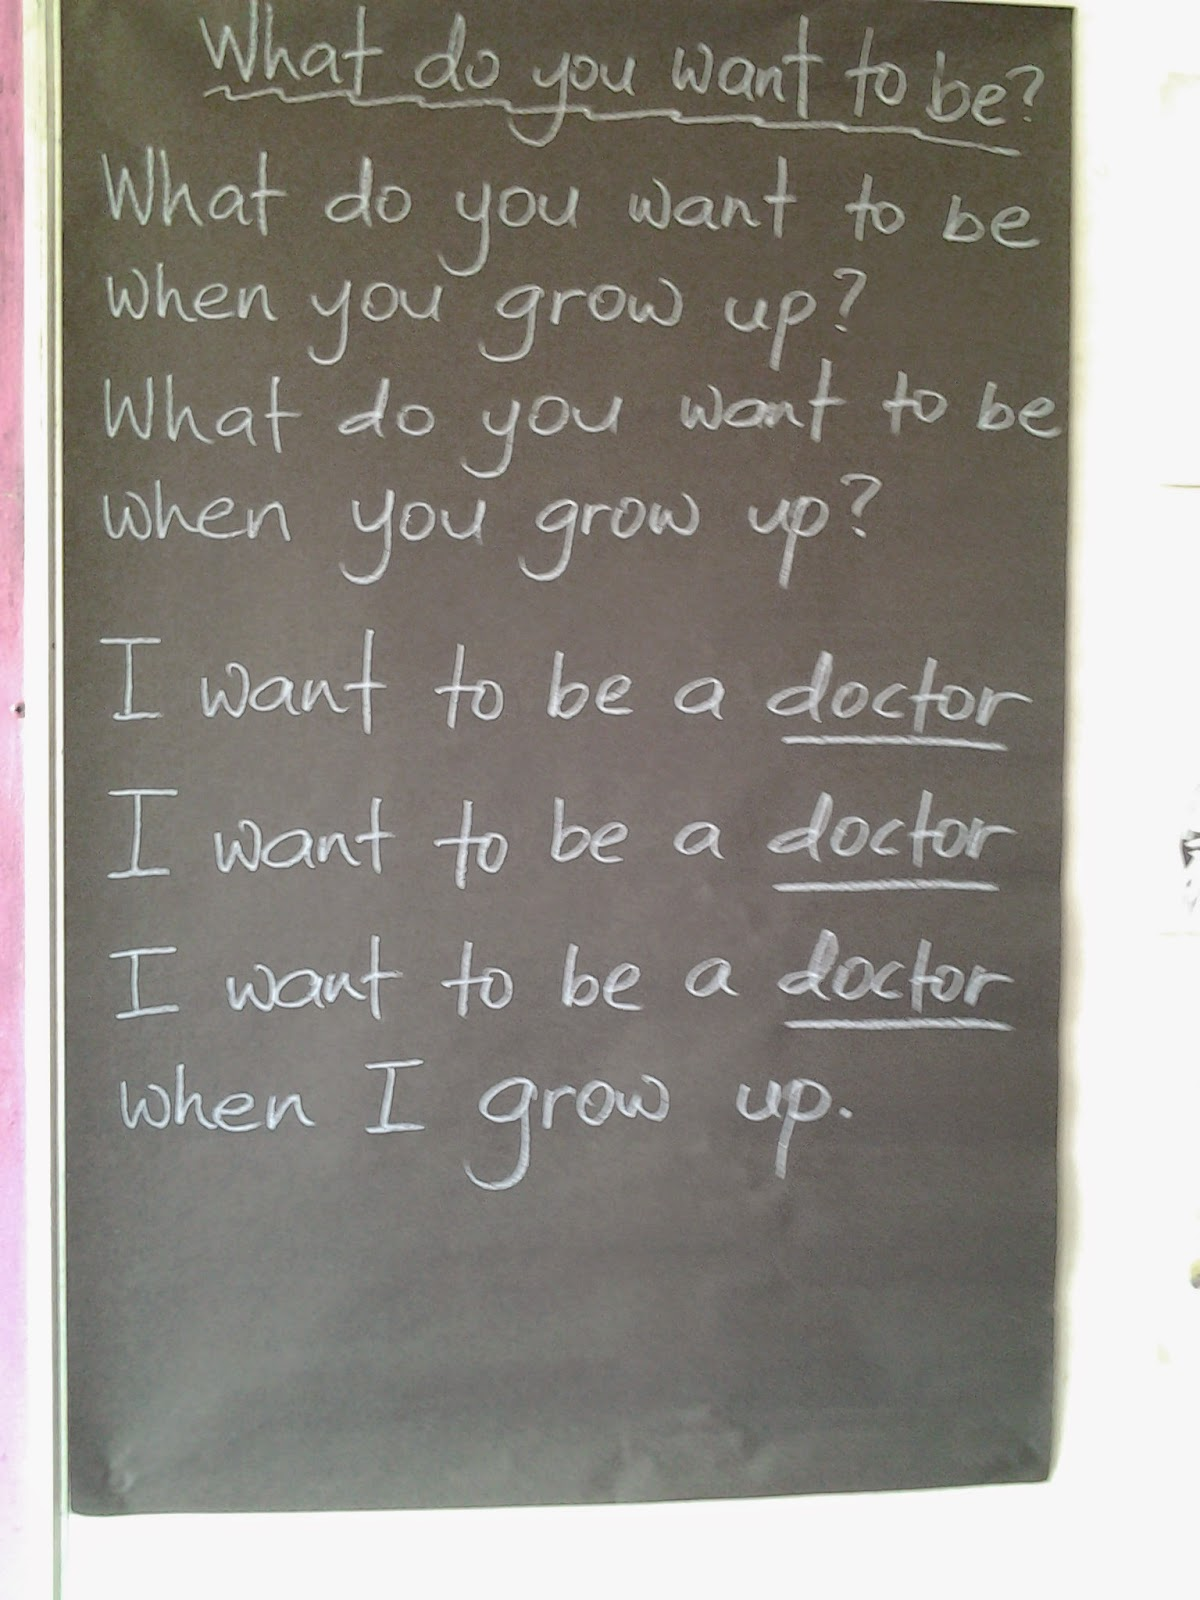 lesson share what do you want to be when you grow up the song lyrics